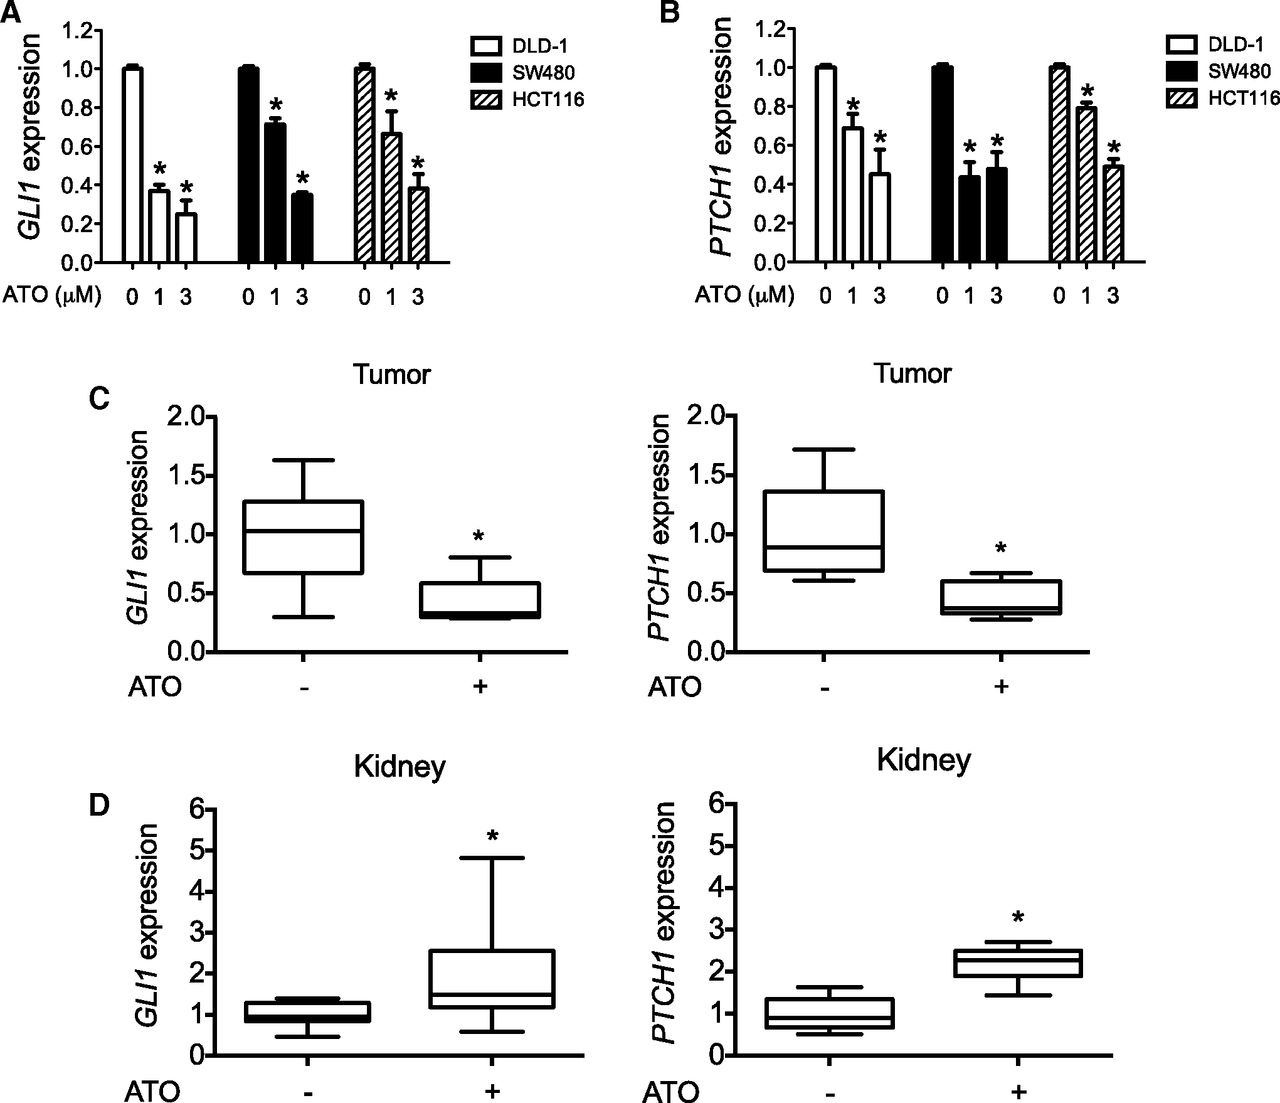 Arsenic Attenuates Gli Signaling Increasing Or Decreasing Its Transcriptional Program In A